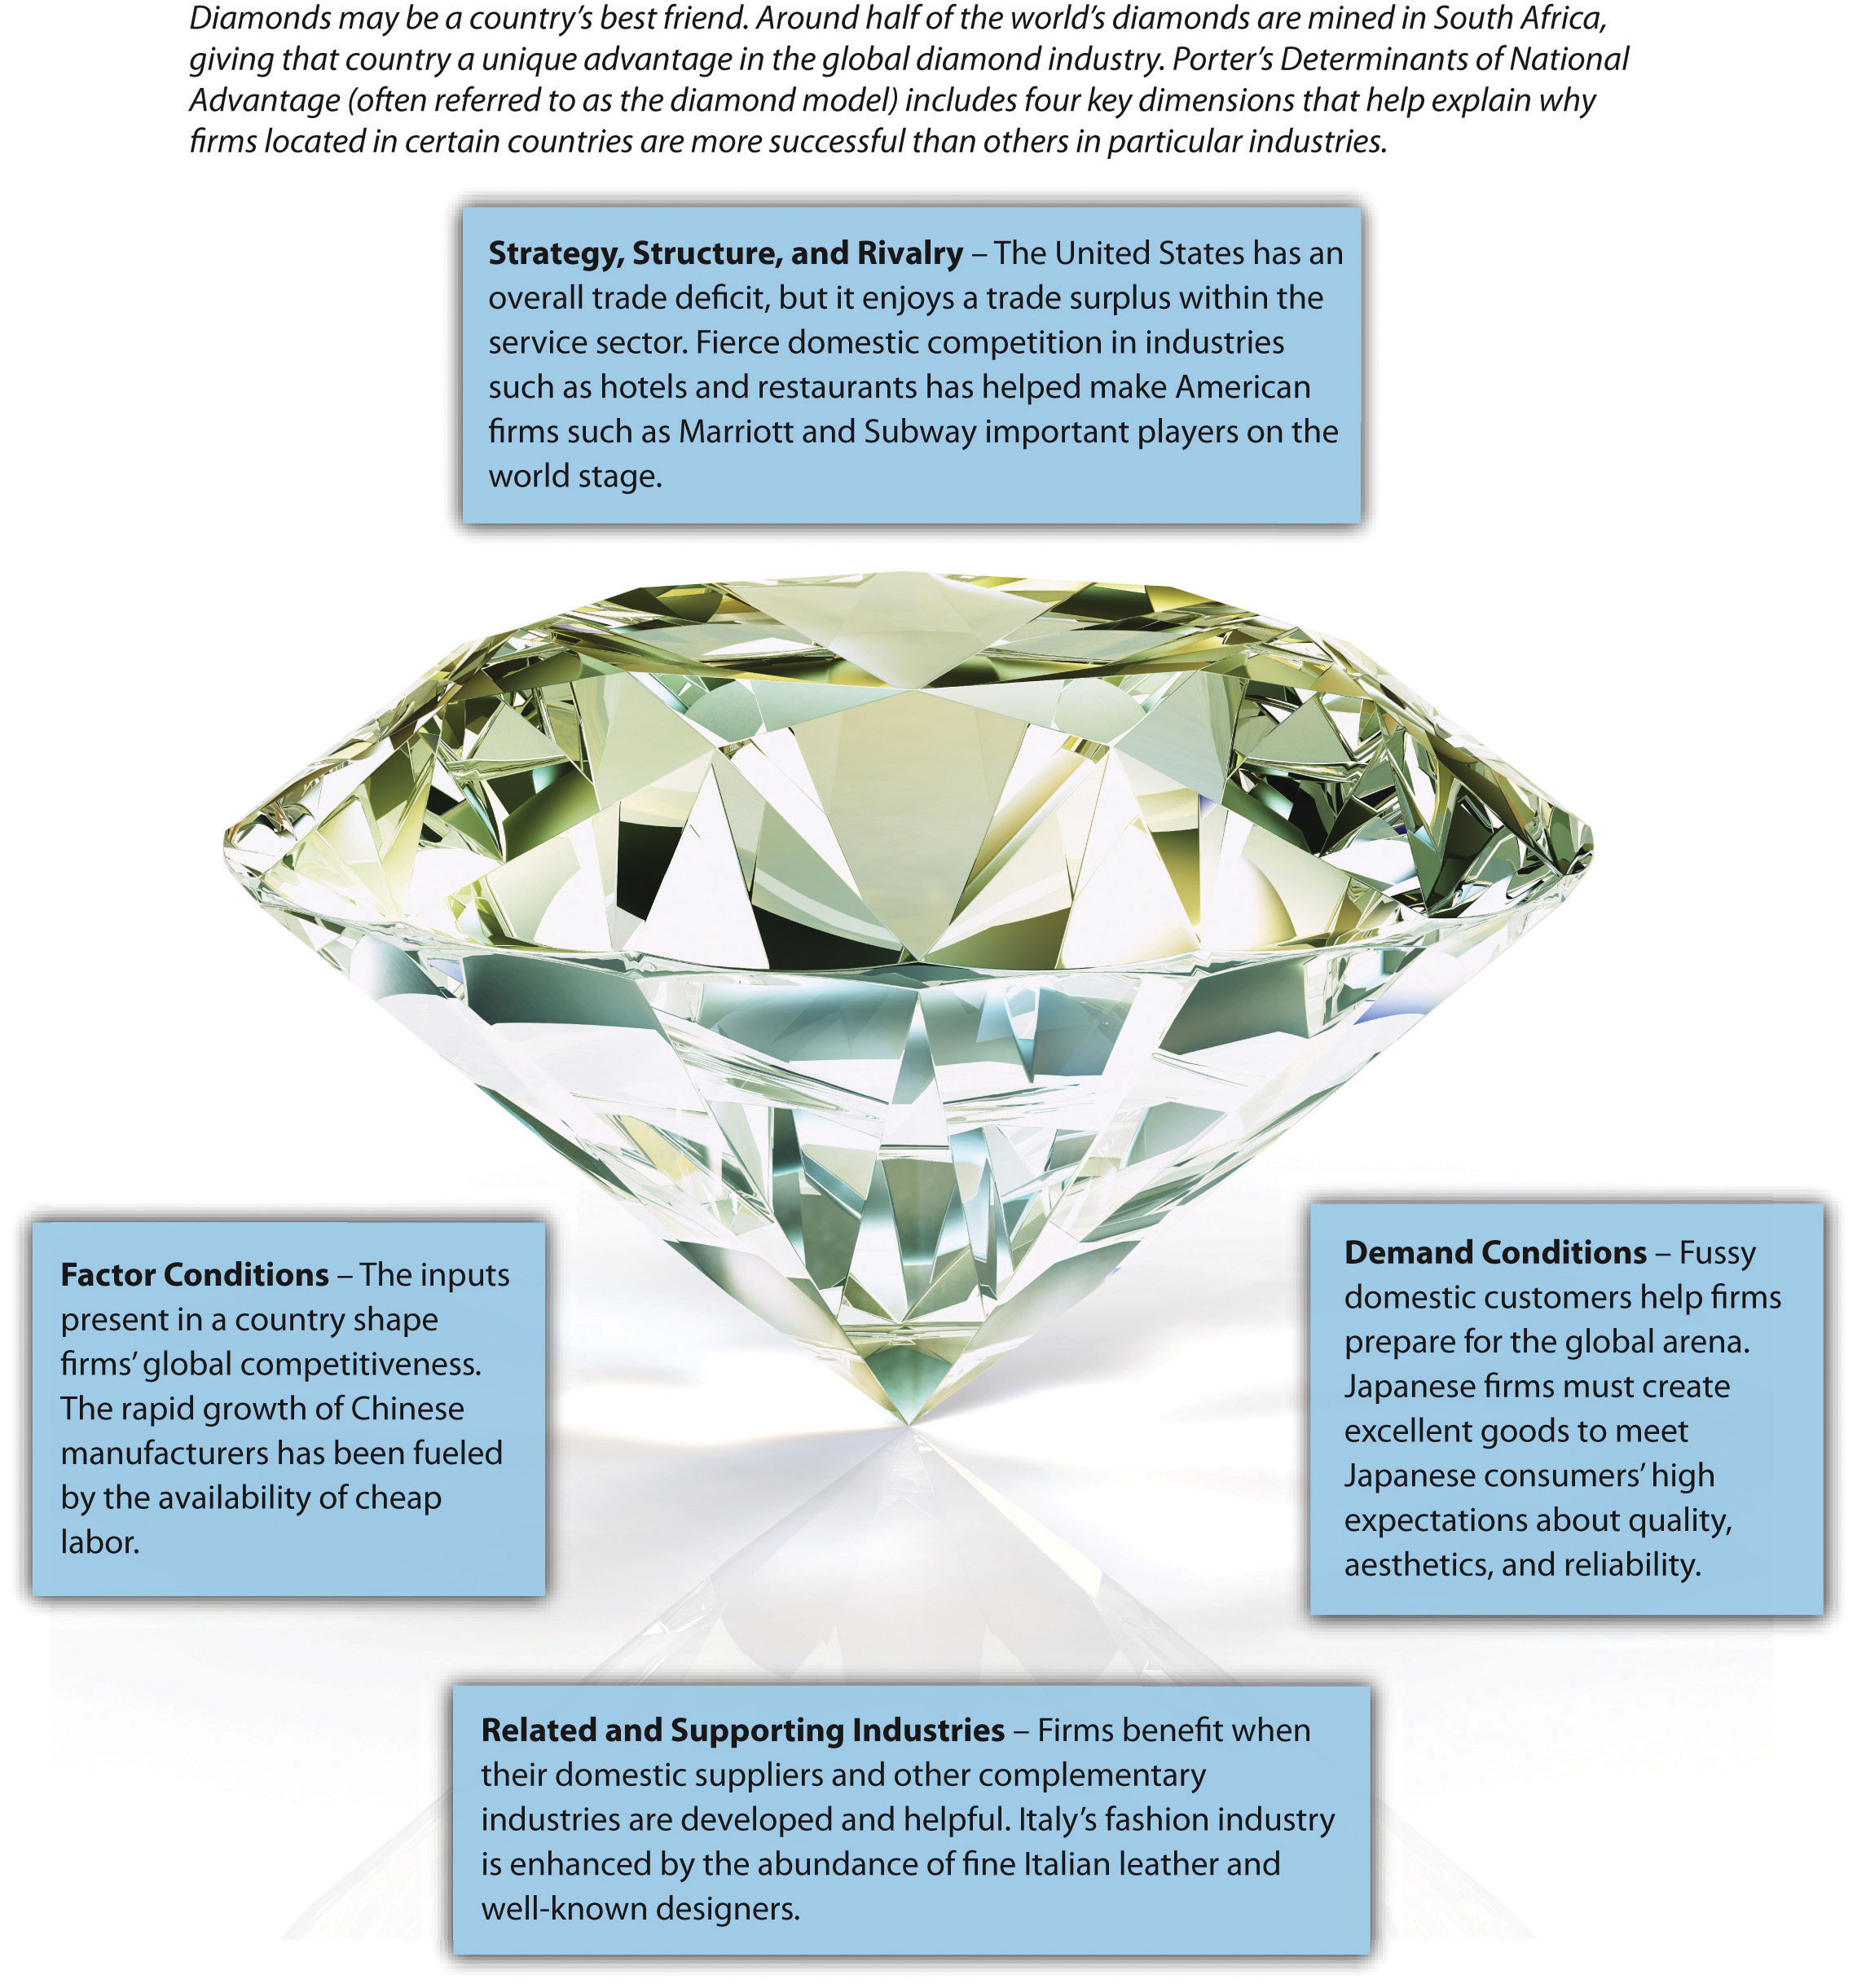 porters diamond model The diamond model by michael porter 1117 words | 5 pages michael porter developed porter's diamond, also known as the diamond model, in 1990 in his book 'the competitive advantage of nations.